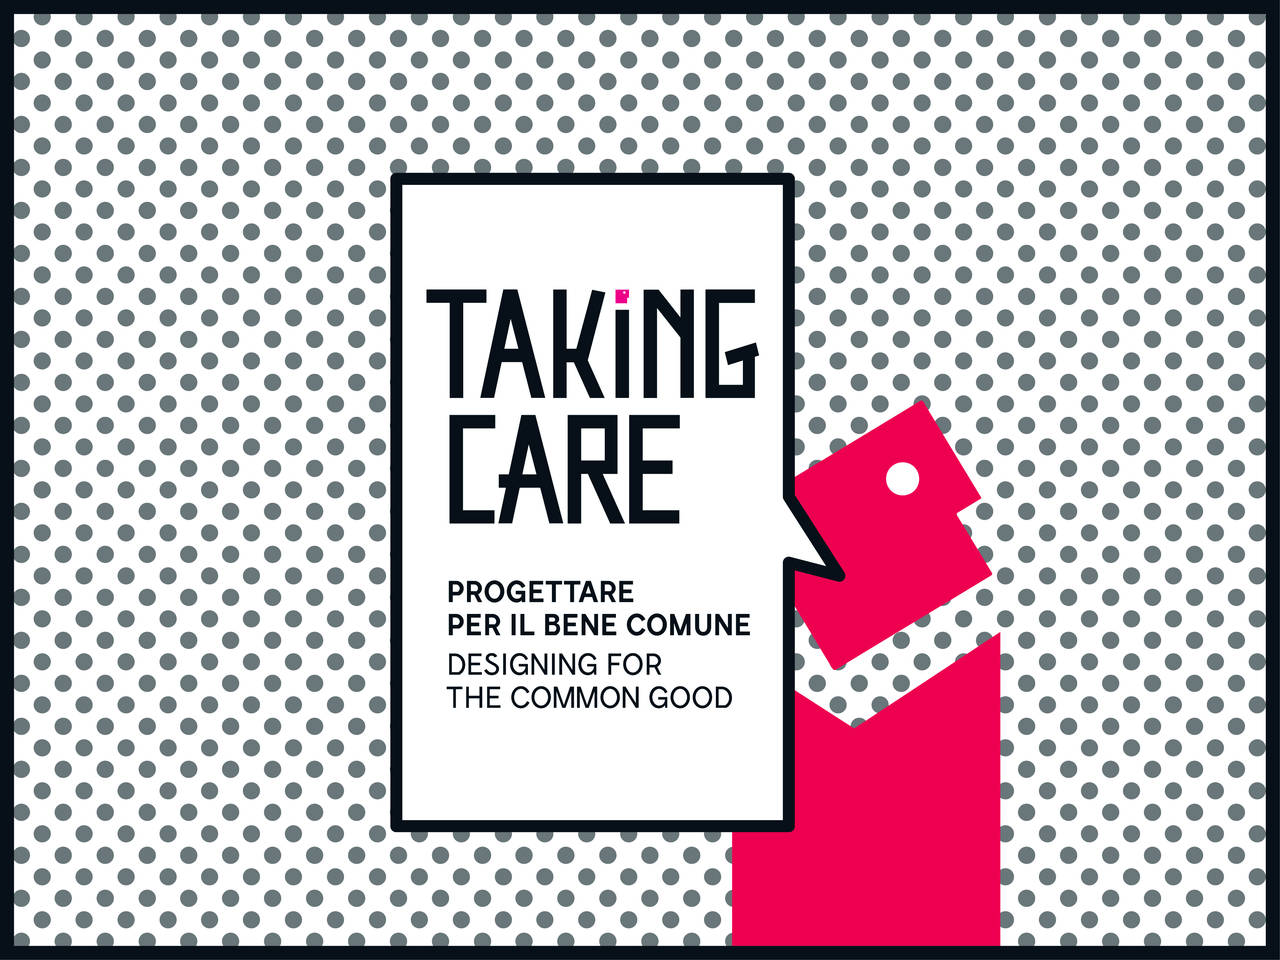 Taking Care - Biennale di Venezia